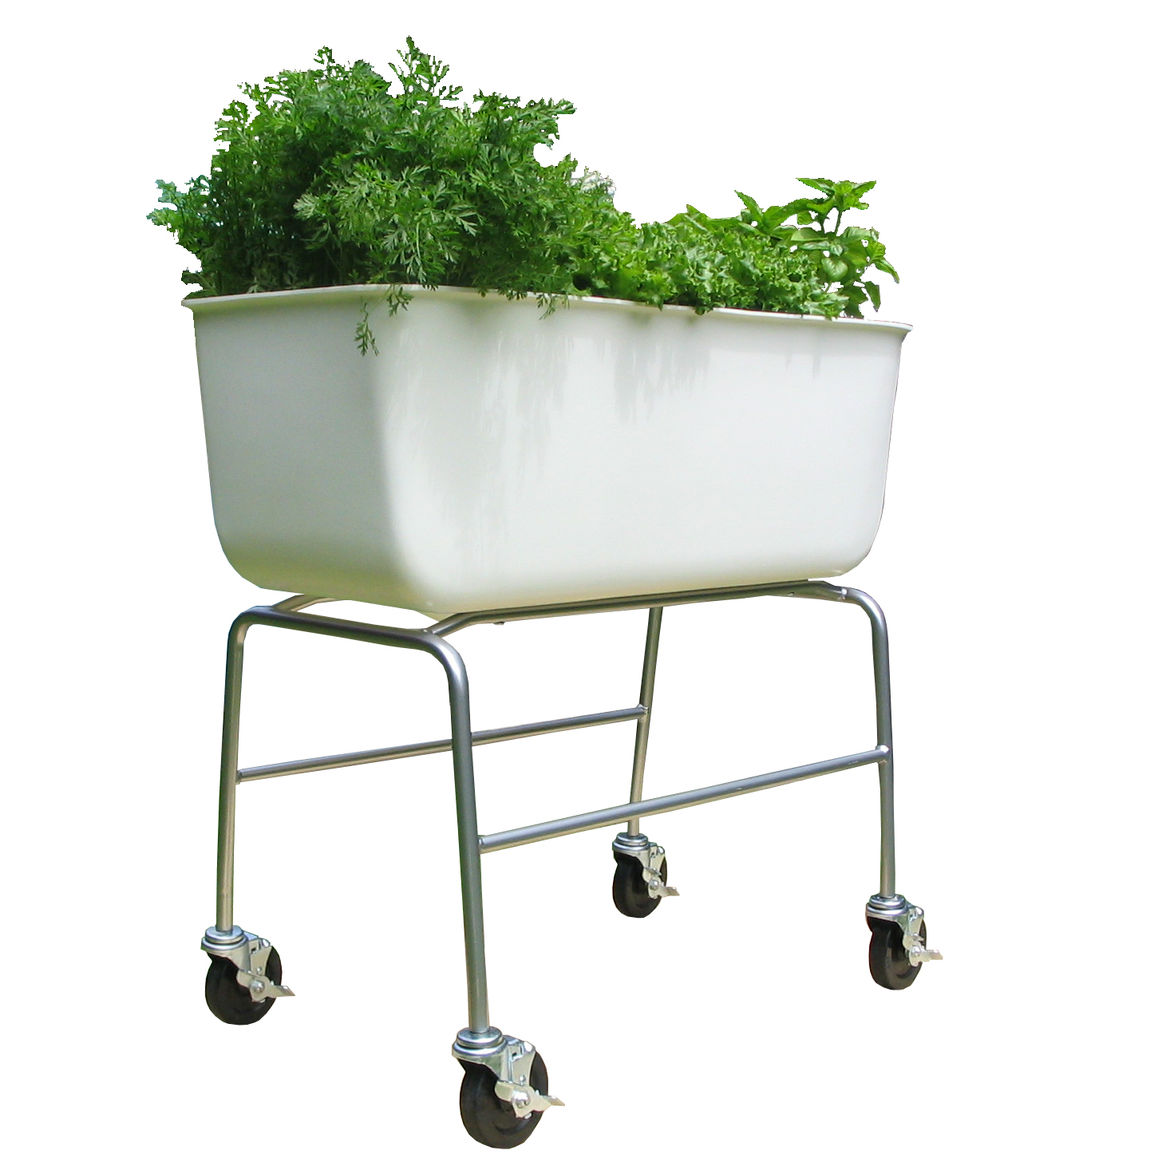 The Food Map Container may look like a bathtub but is the ideal planter. Its lightweight recycled-plastic basin features a contoured drainage system built into the bottom and it sits on a metal-tubing frame and locking rubber casters, which makes moving i